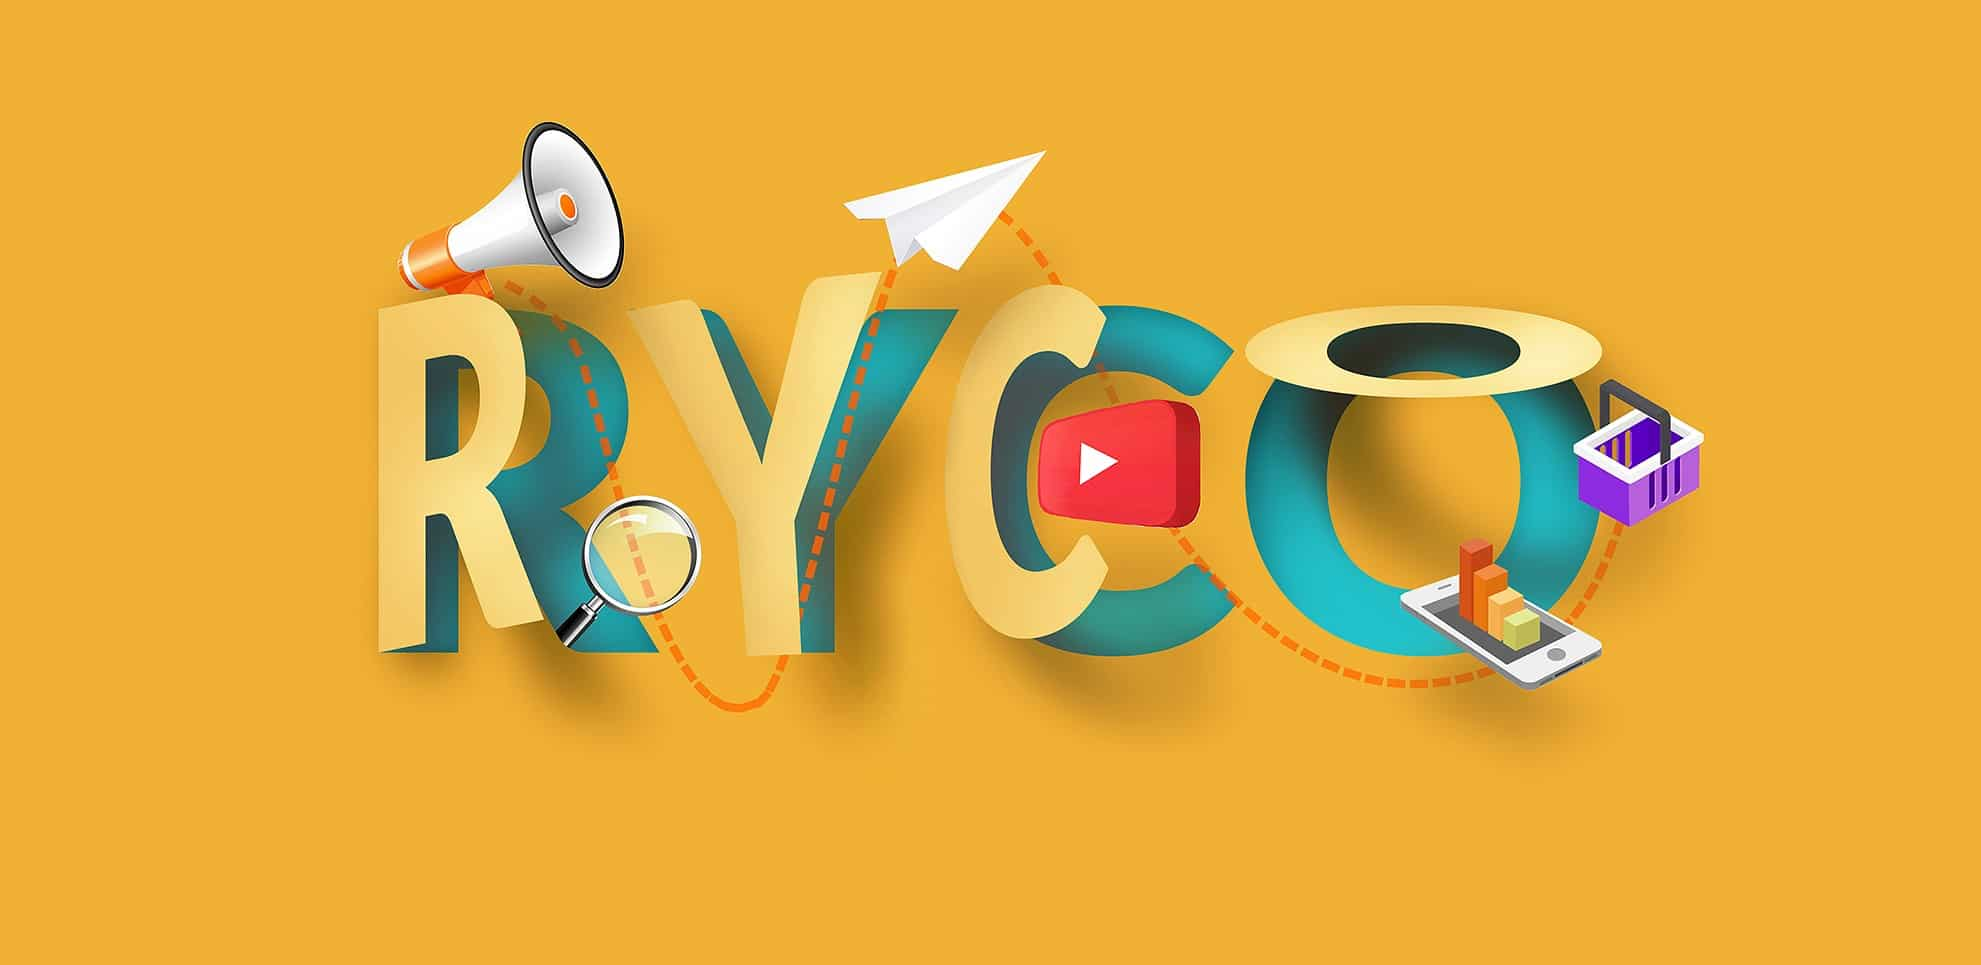 digital agency Belfast Ryco Marketing